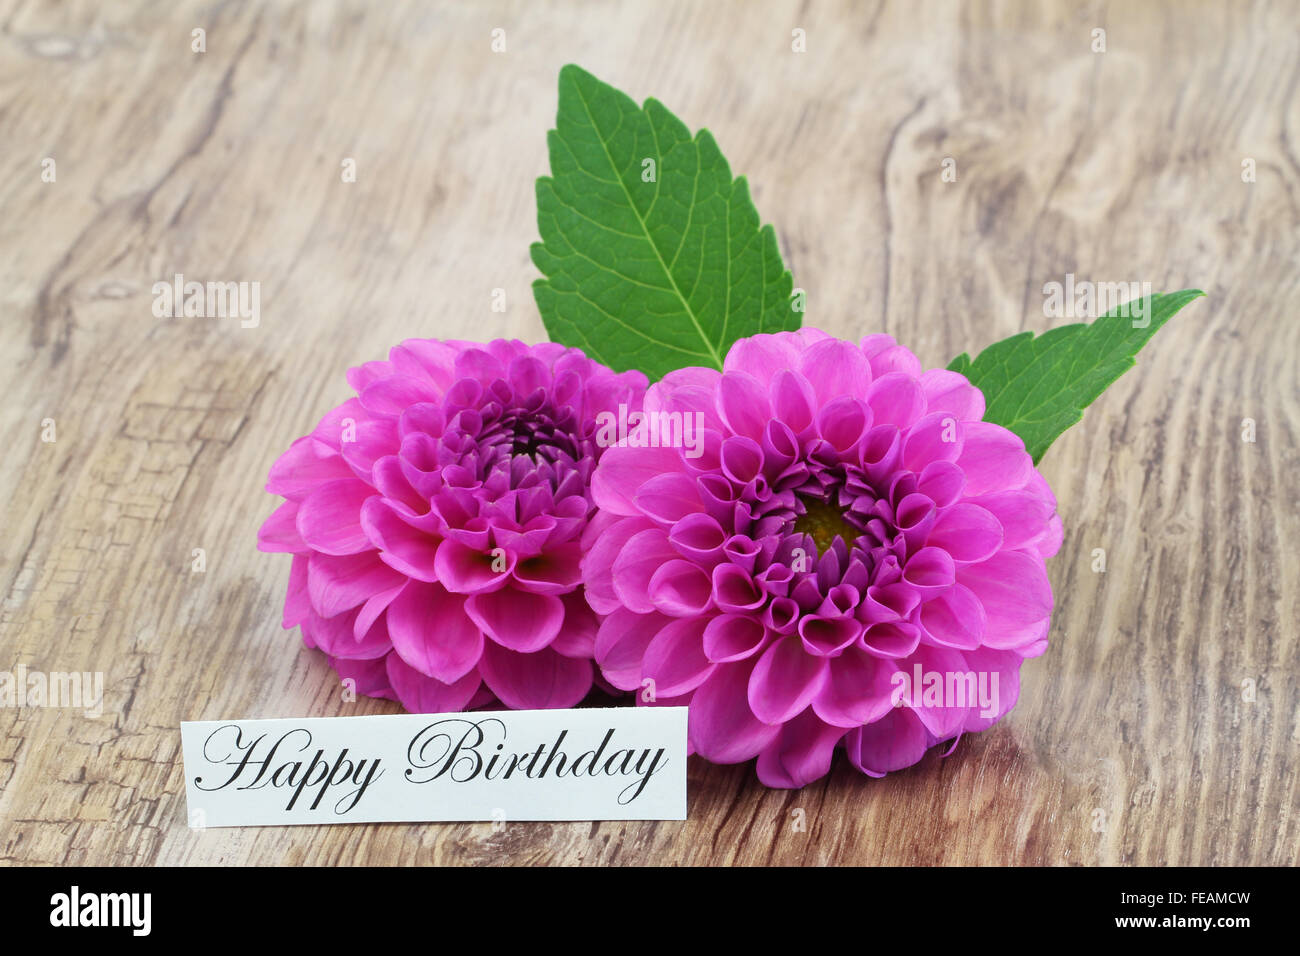 Happy birthday card with two pink dahlia flowers stock photo happy birthday card with two pink dahlia flowers izmirmasajfo